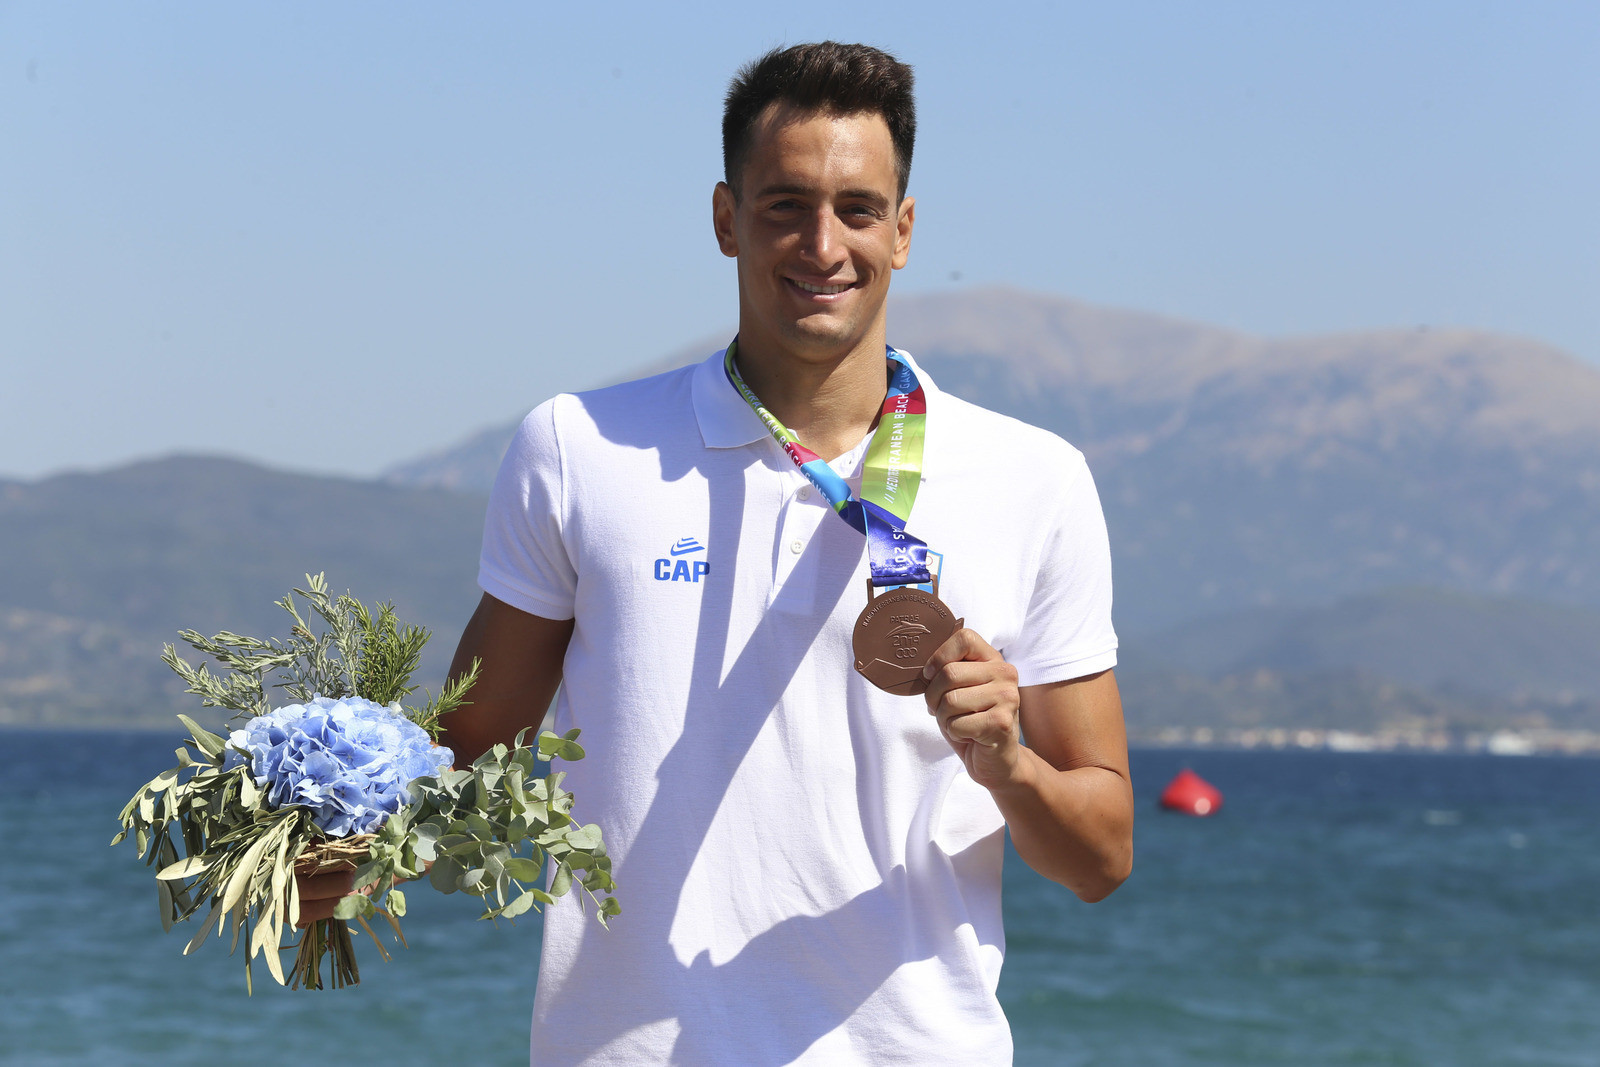 Greece's Georgios Arniakos was the only non-Italian medallist in the 5km open water swimming events after claiming the men's bronze ©Patras 2019